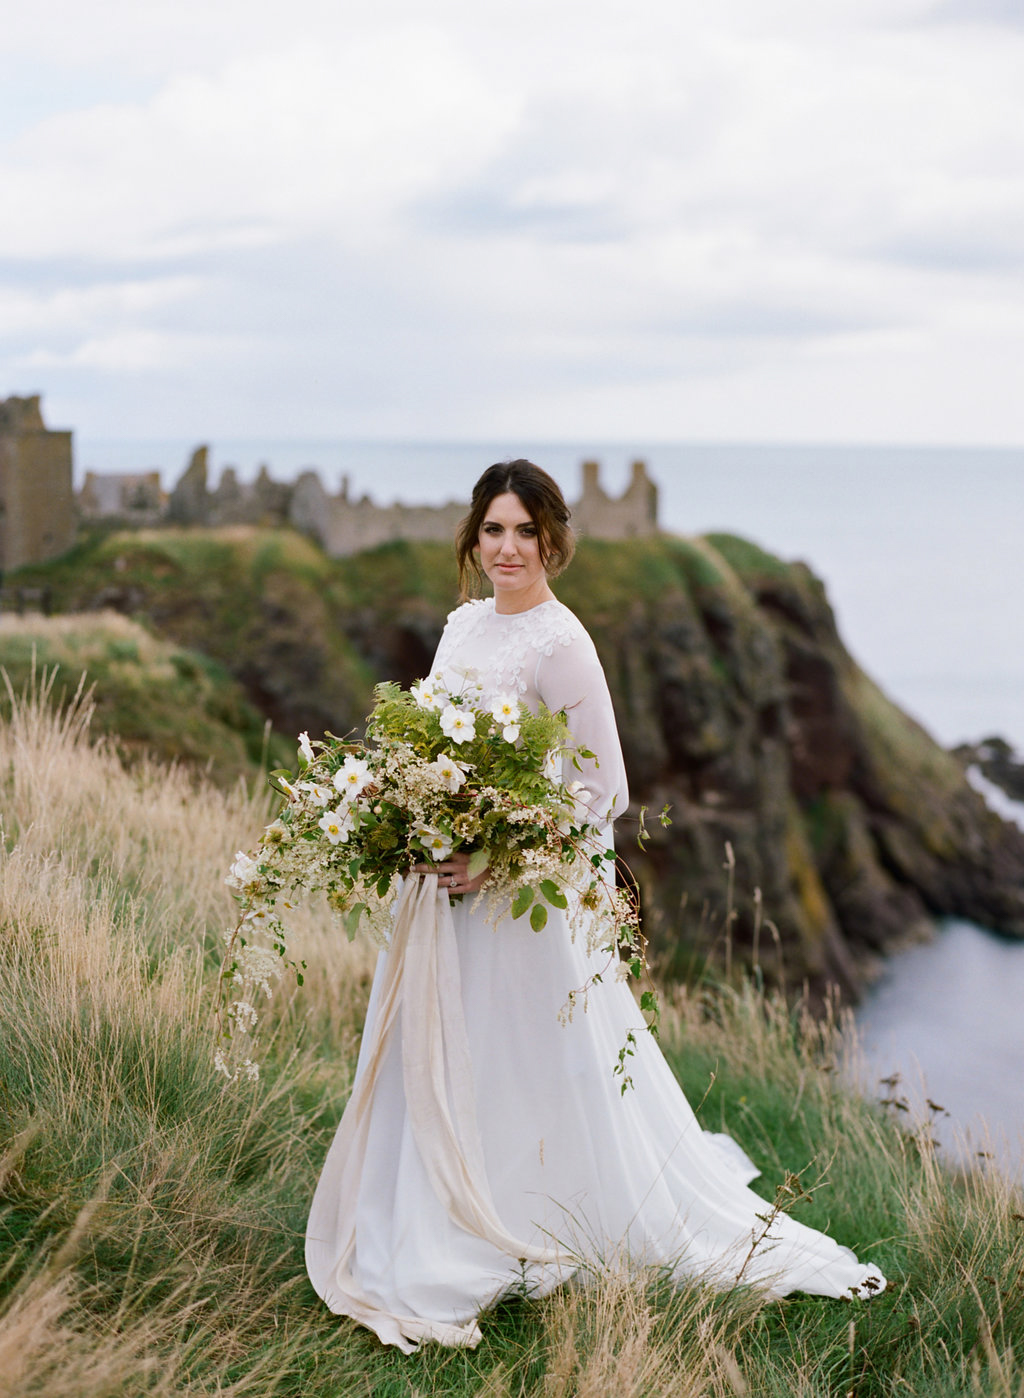 Scotland-Prewedding-highlands-castle-Engagment-Photos-Katie-Grant (90 of 139).jpg